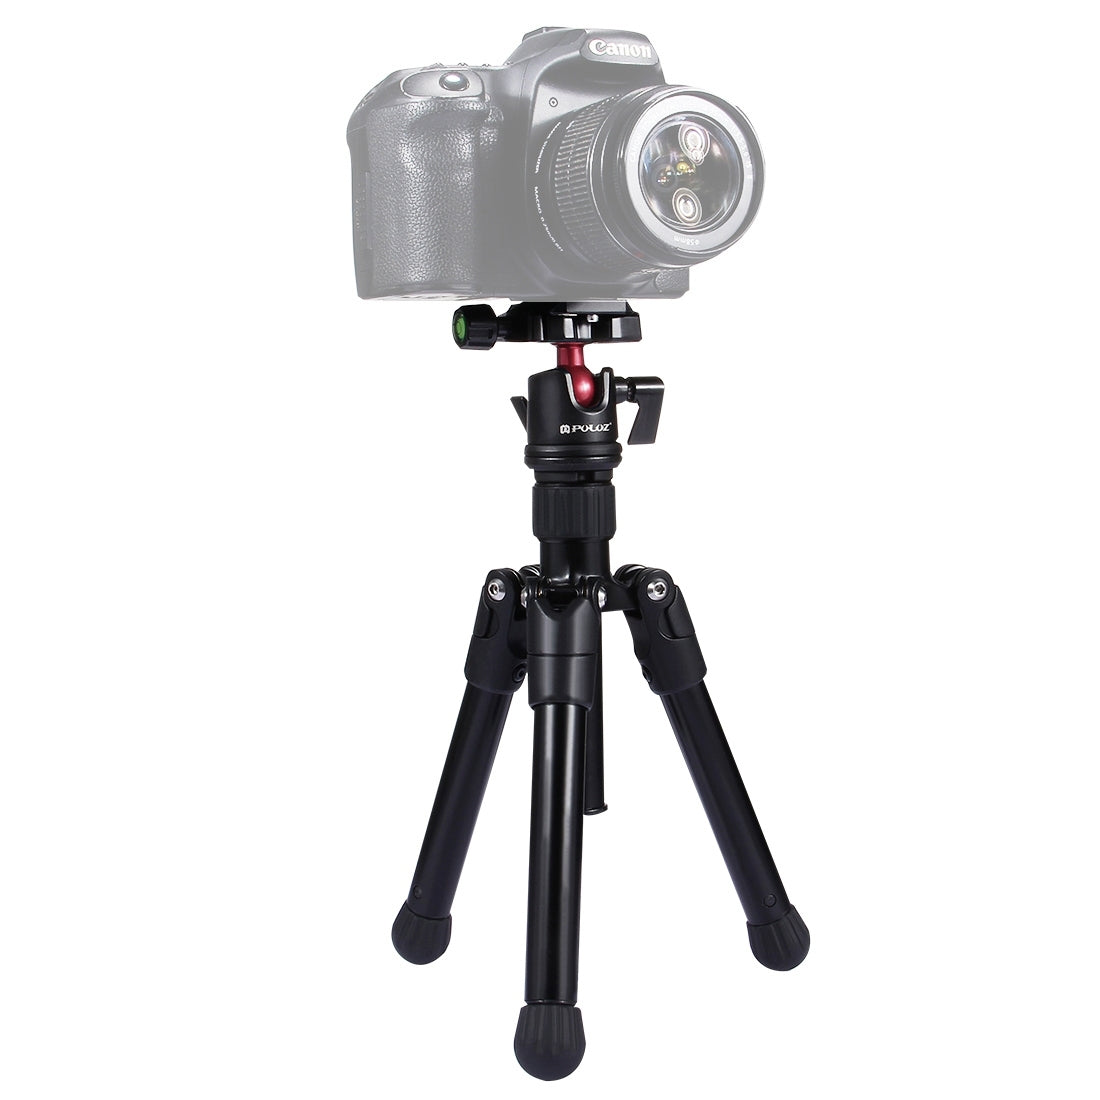 Pocket Mini Microspur Photos Magnesium Alloy Tripod Mount with 360 Degree Ball Head  for DSLR &  Digital Camera, Adjustable Heig